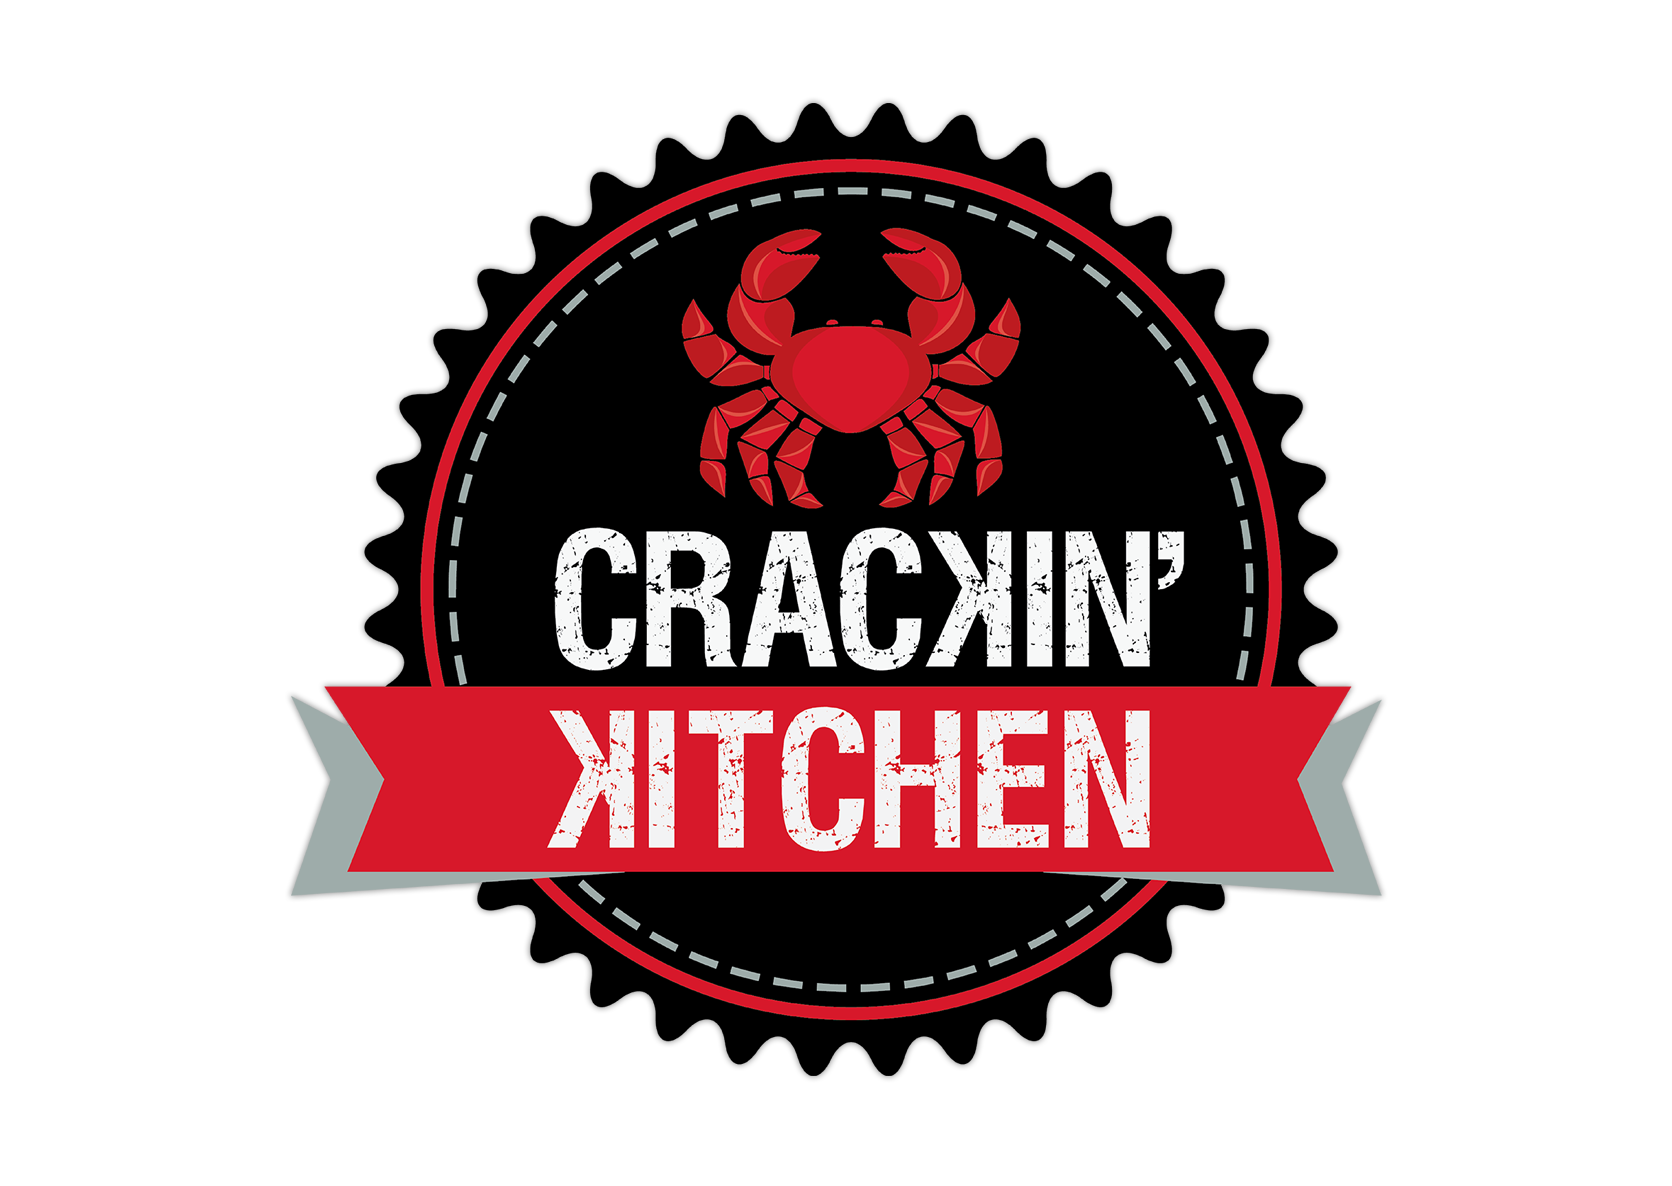 http://crackinkitchen.com/wp-content/uploads/2018/02/crackin-kitchen-logo_FINAL-2.png